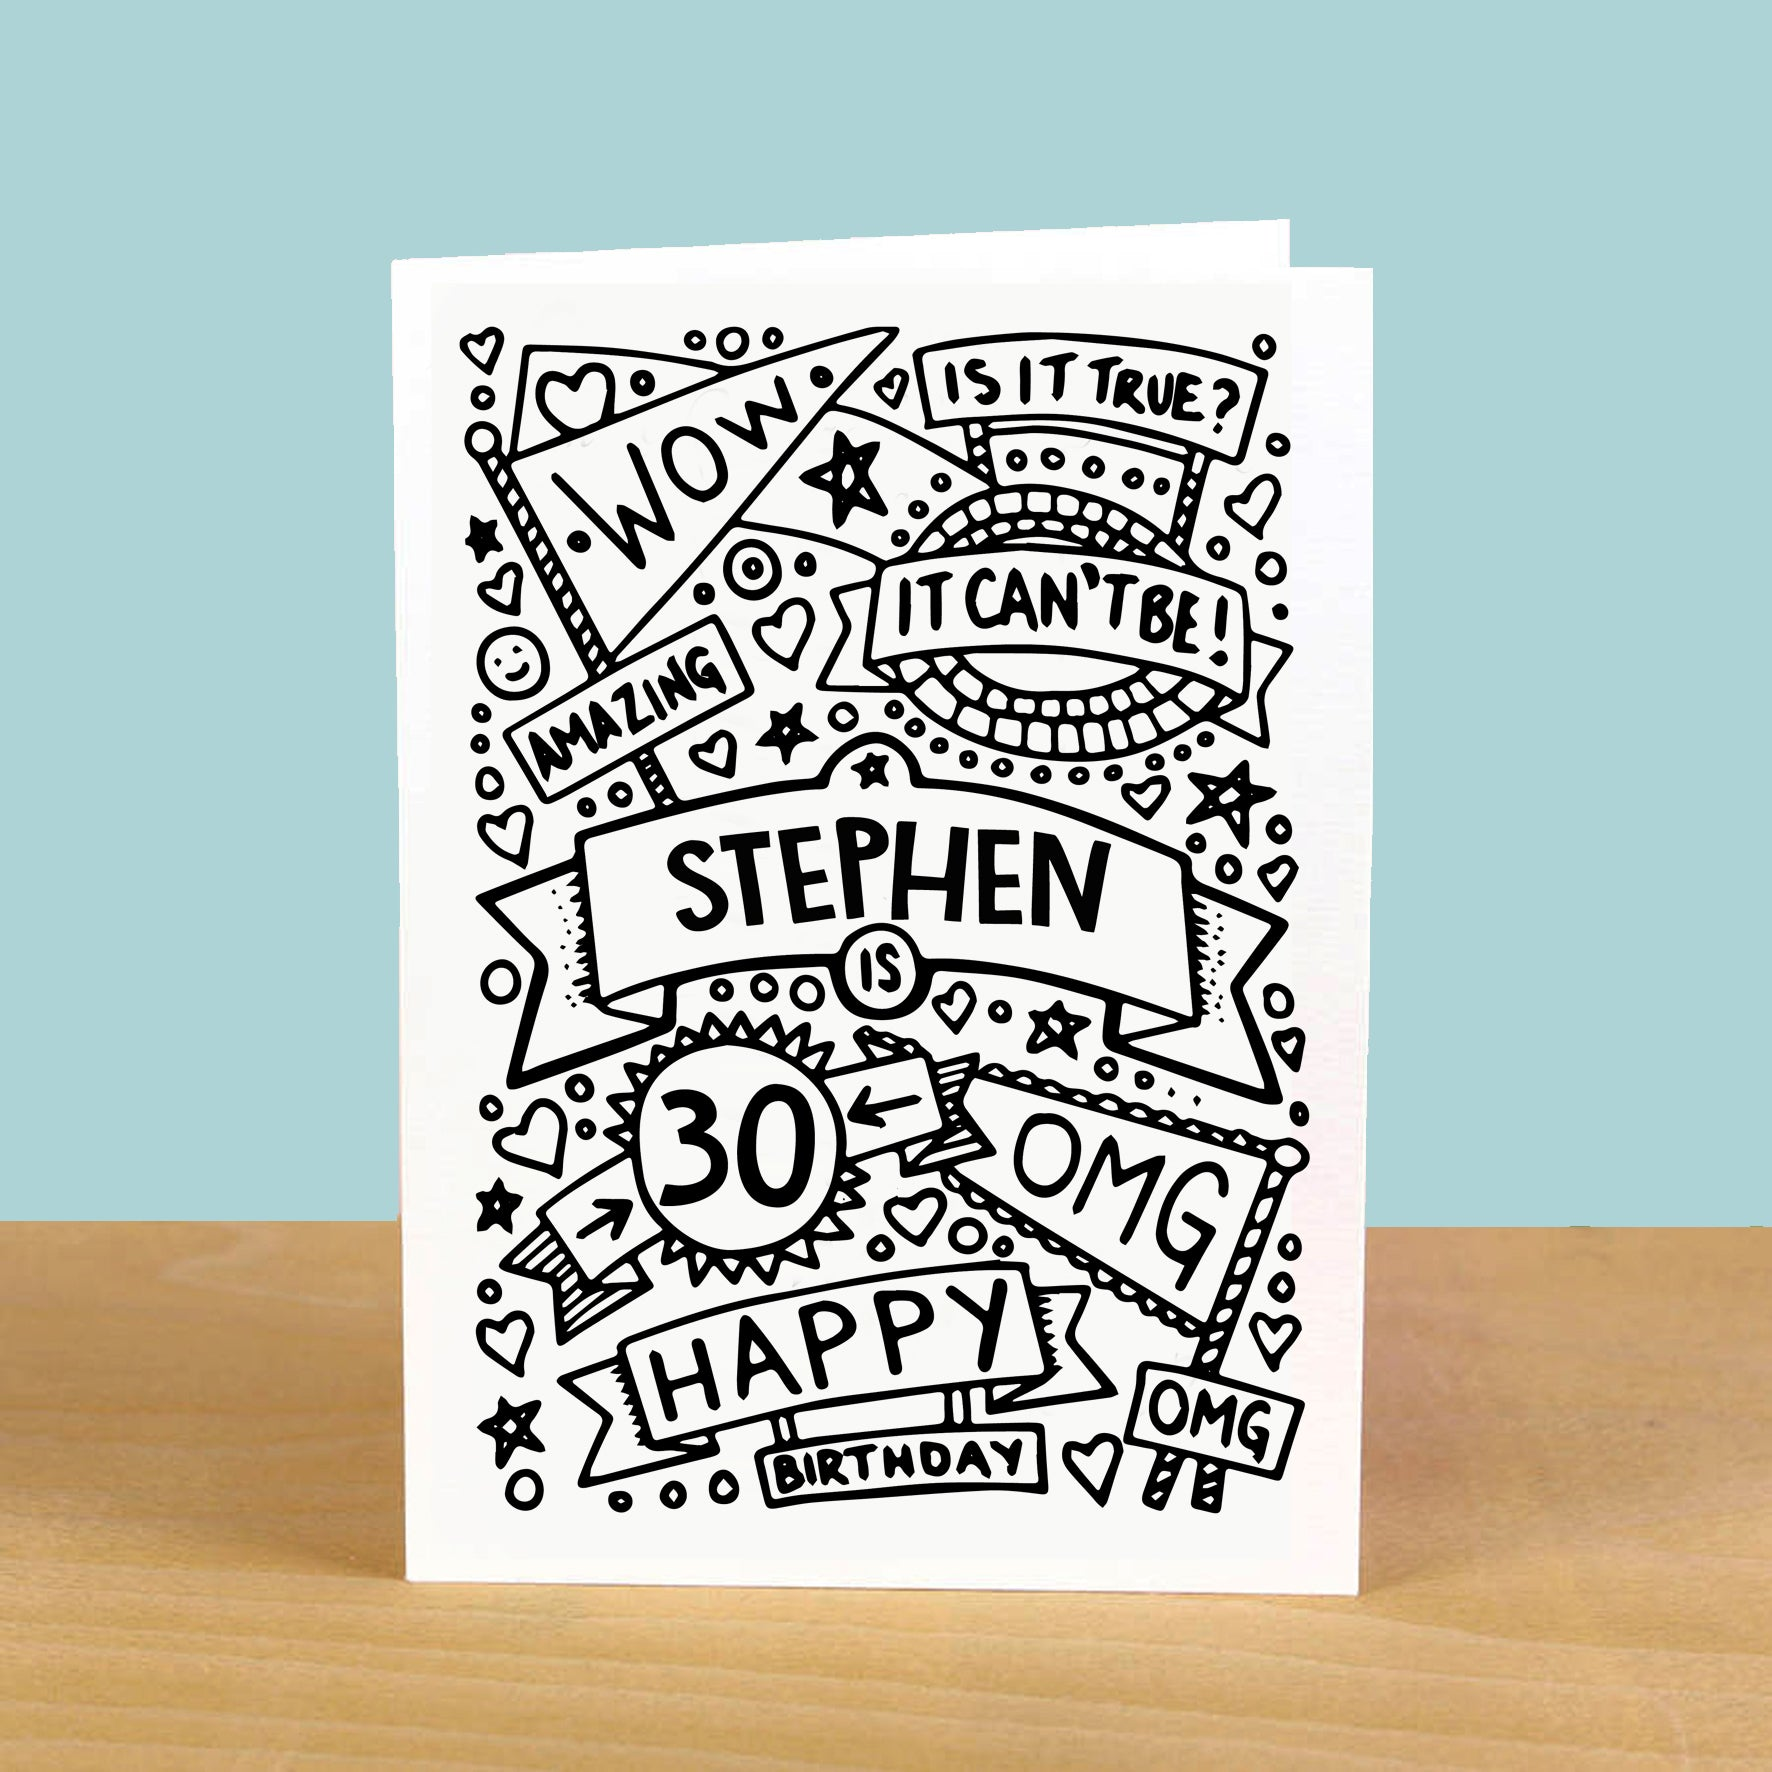 Personalised Birthday Card Design 269909